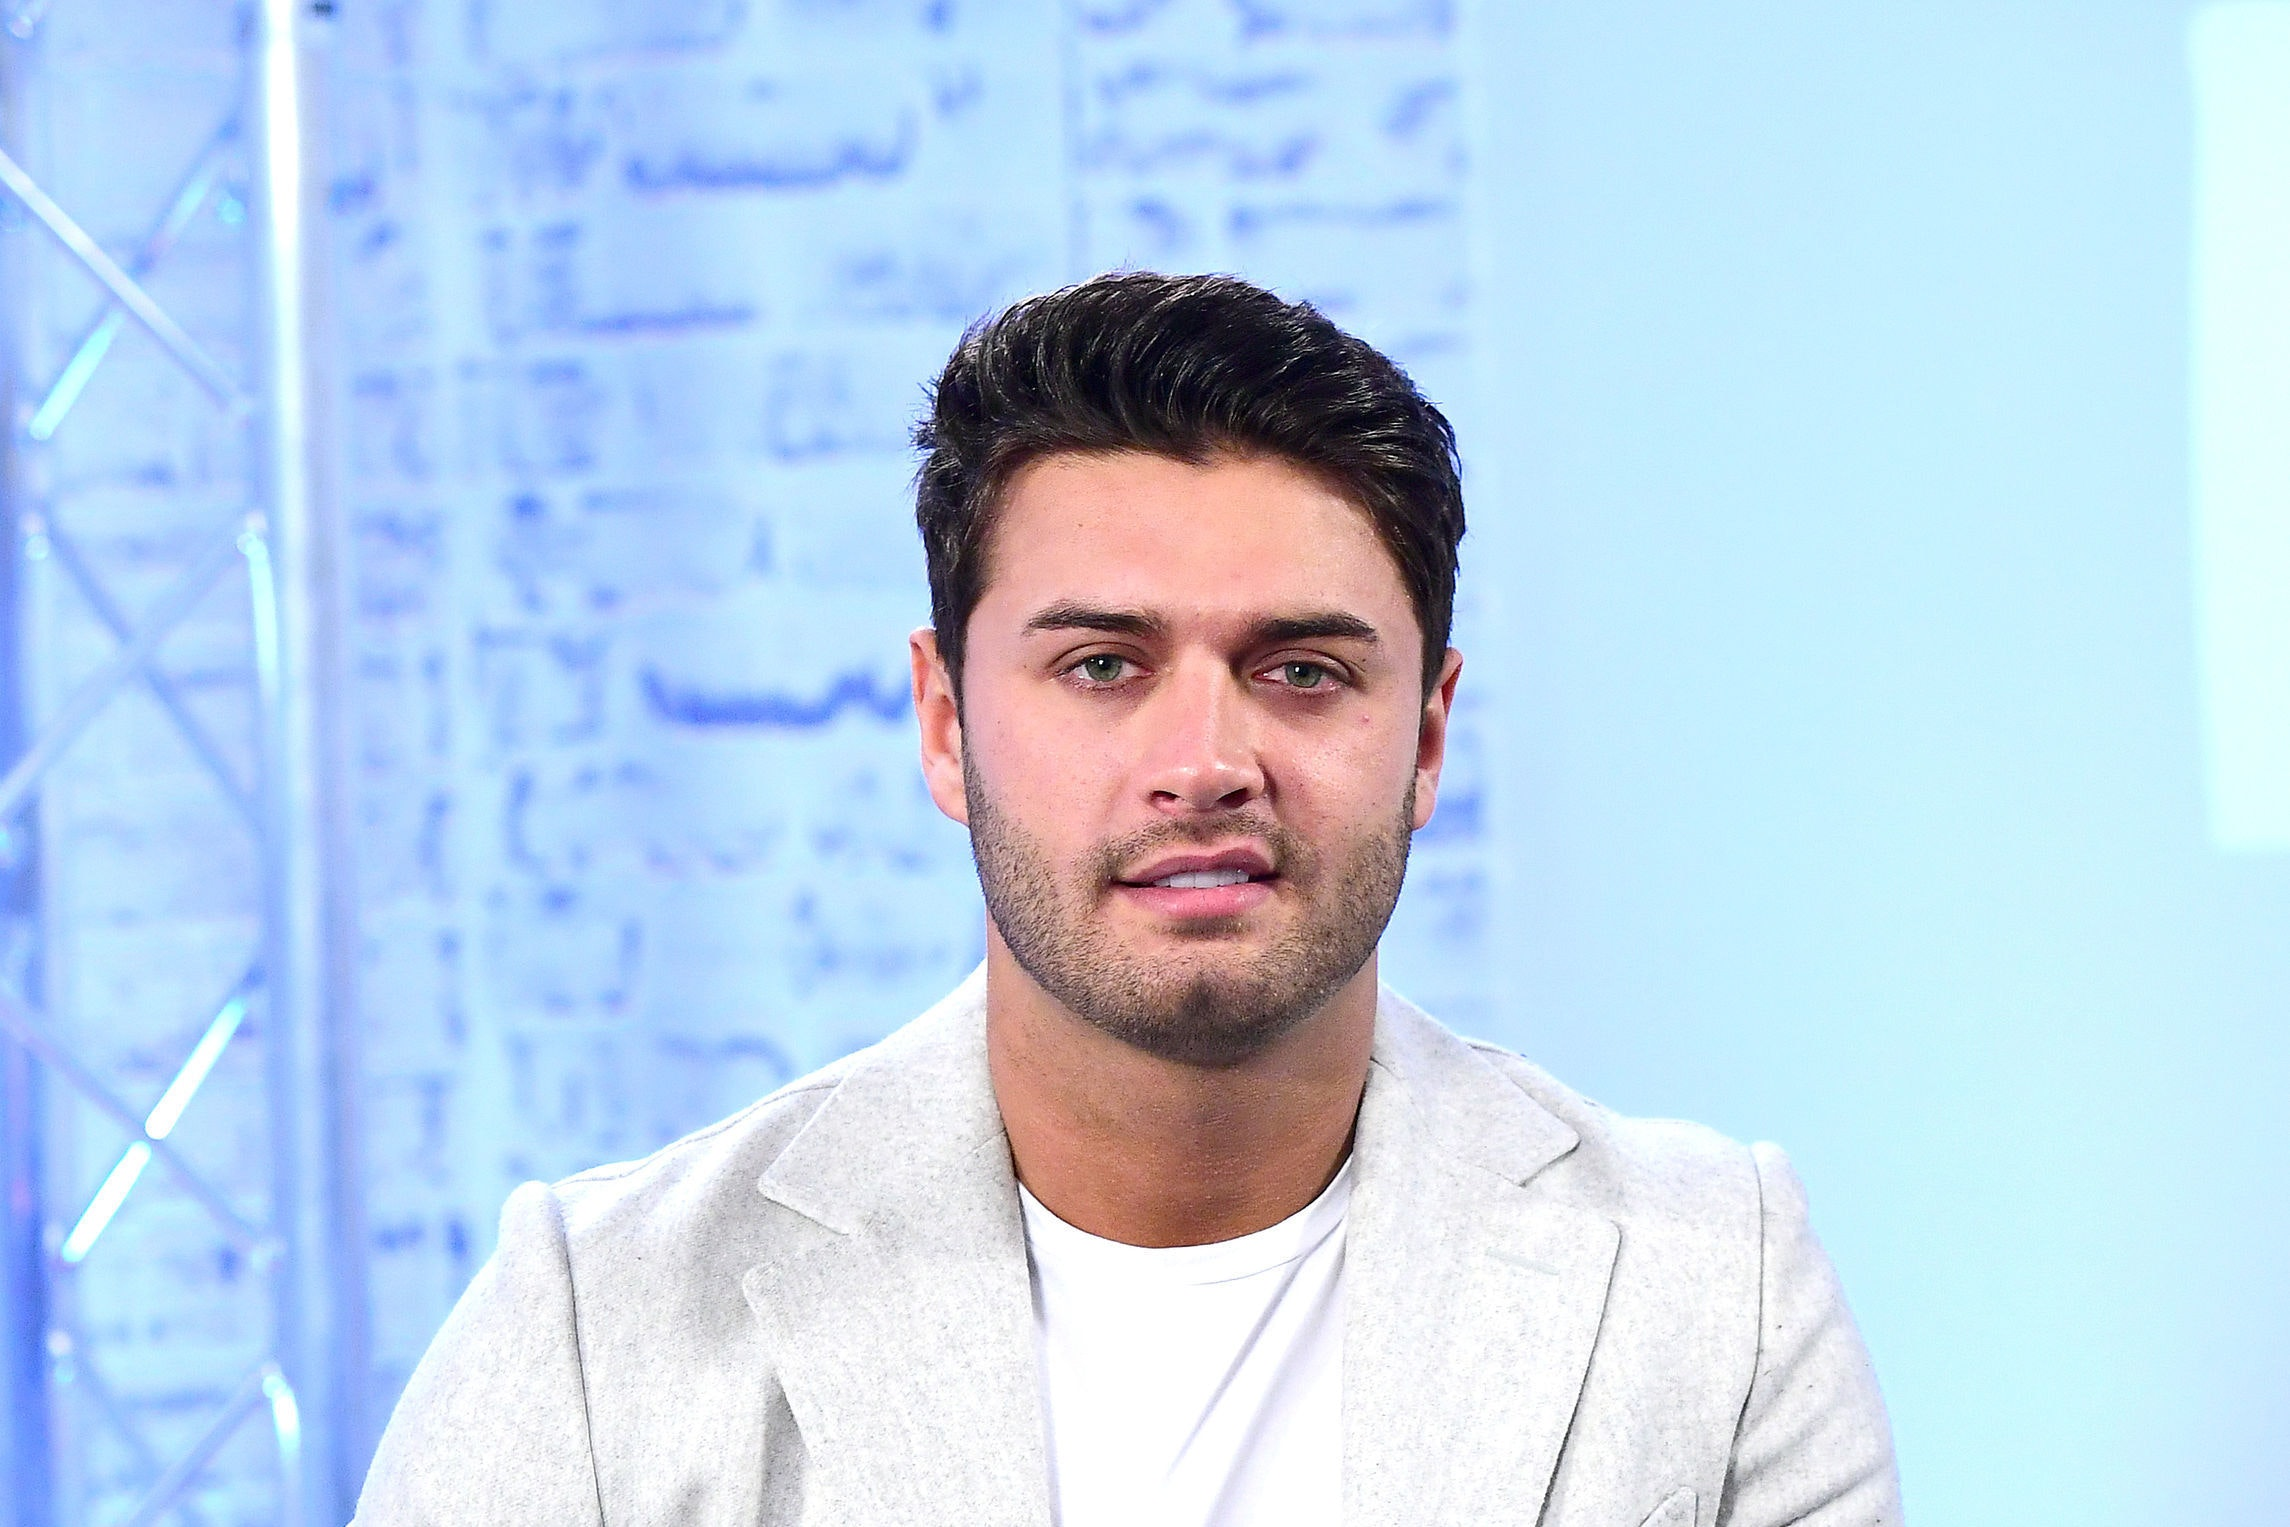 Mike Thalassitis' business partner will go ahead with opening of cafe they planned together